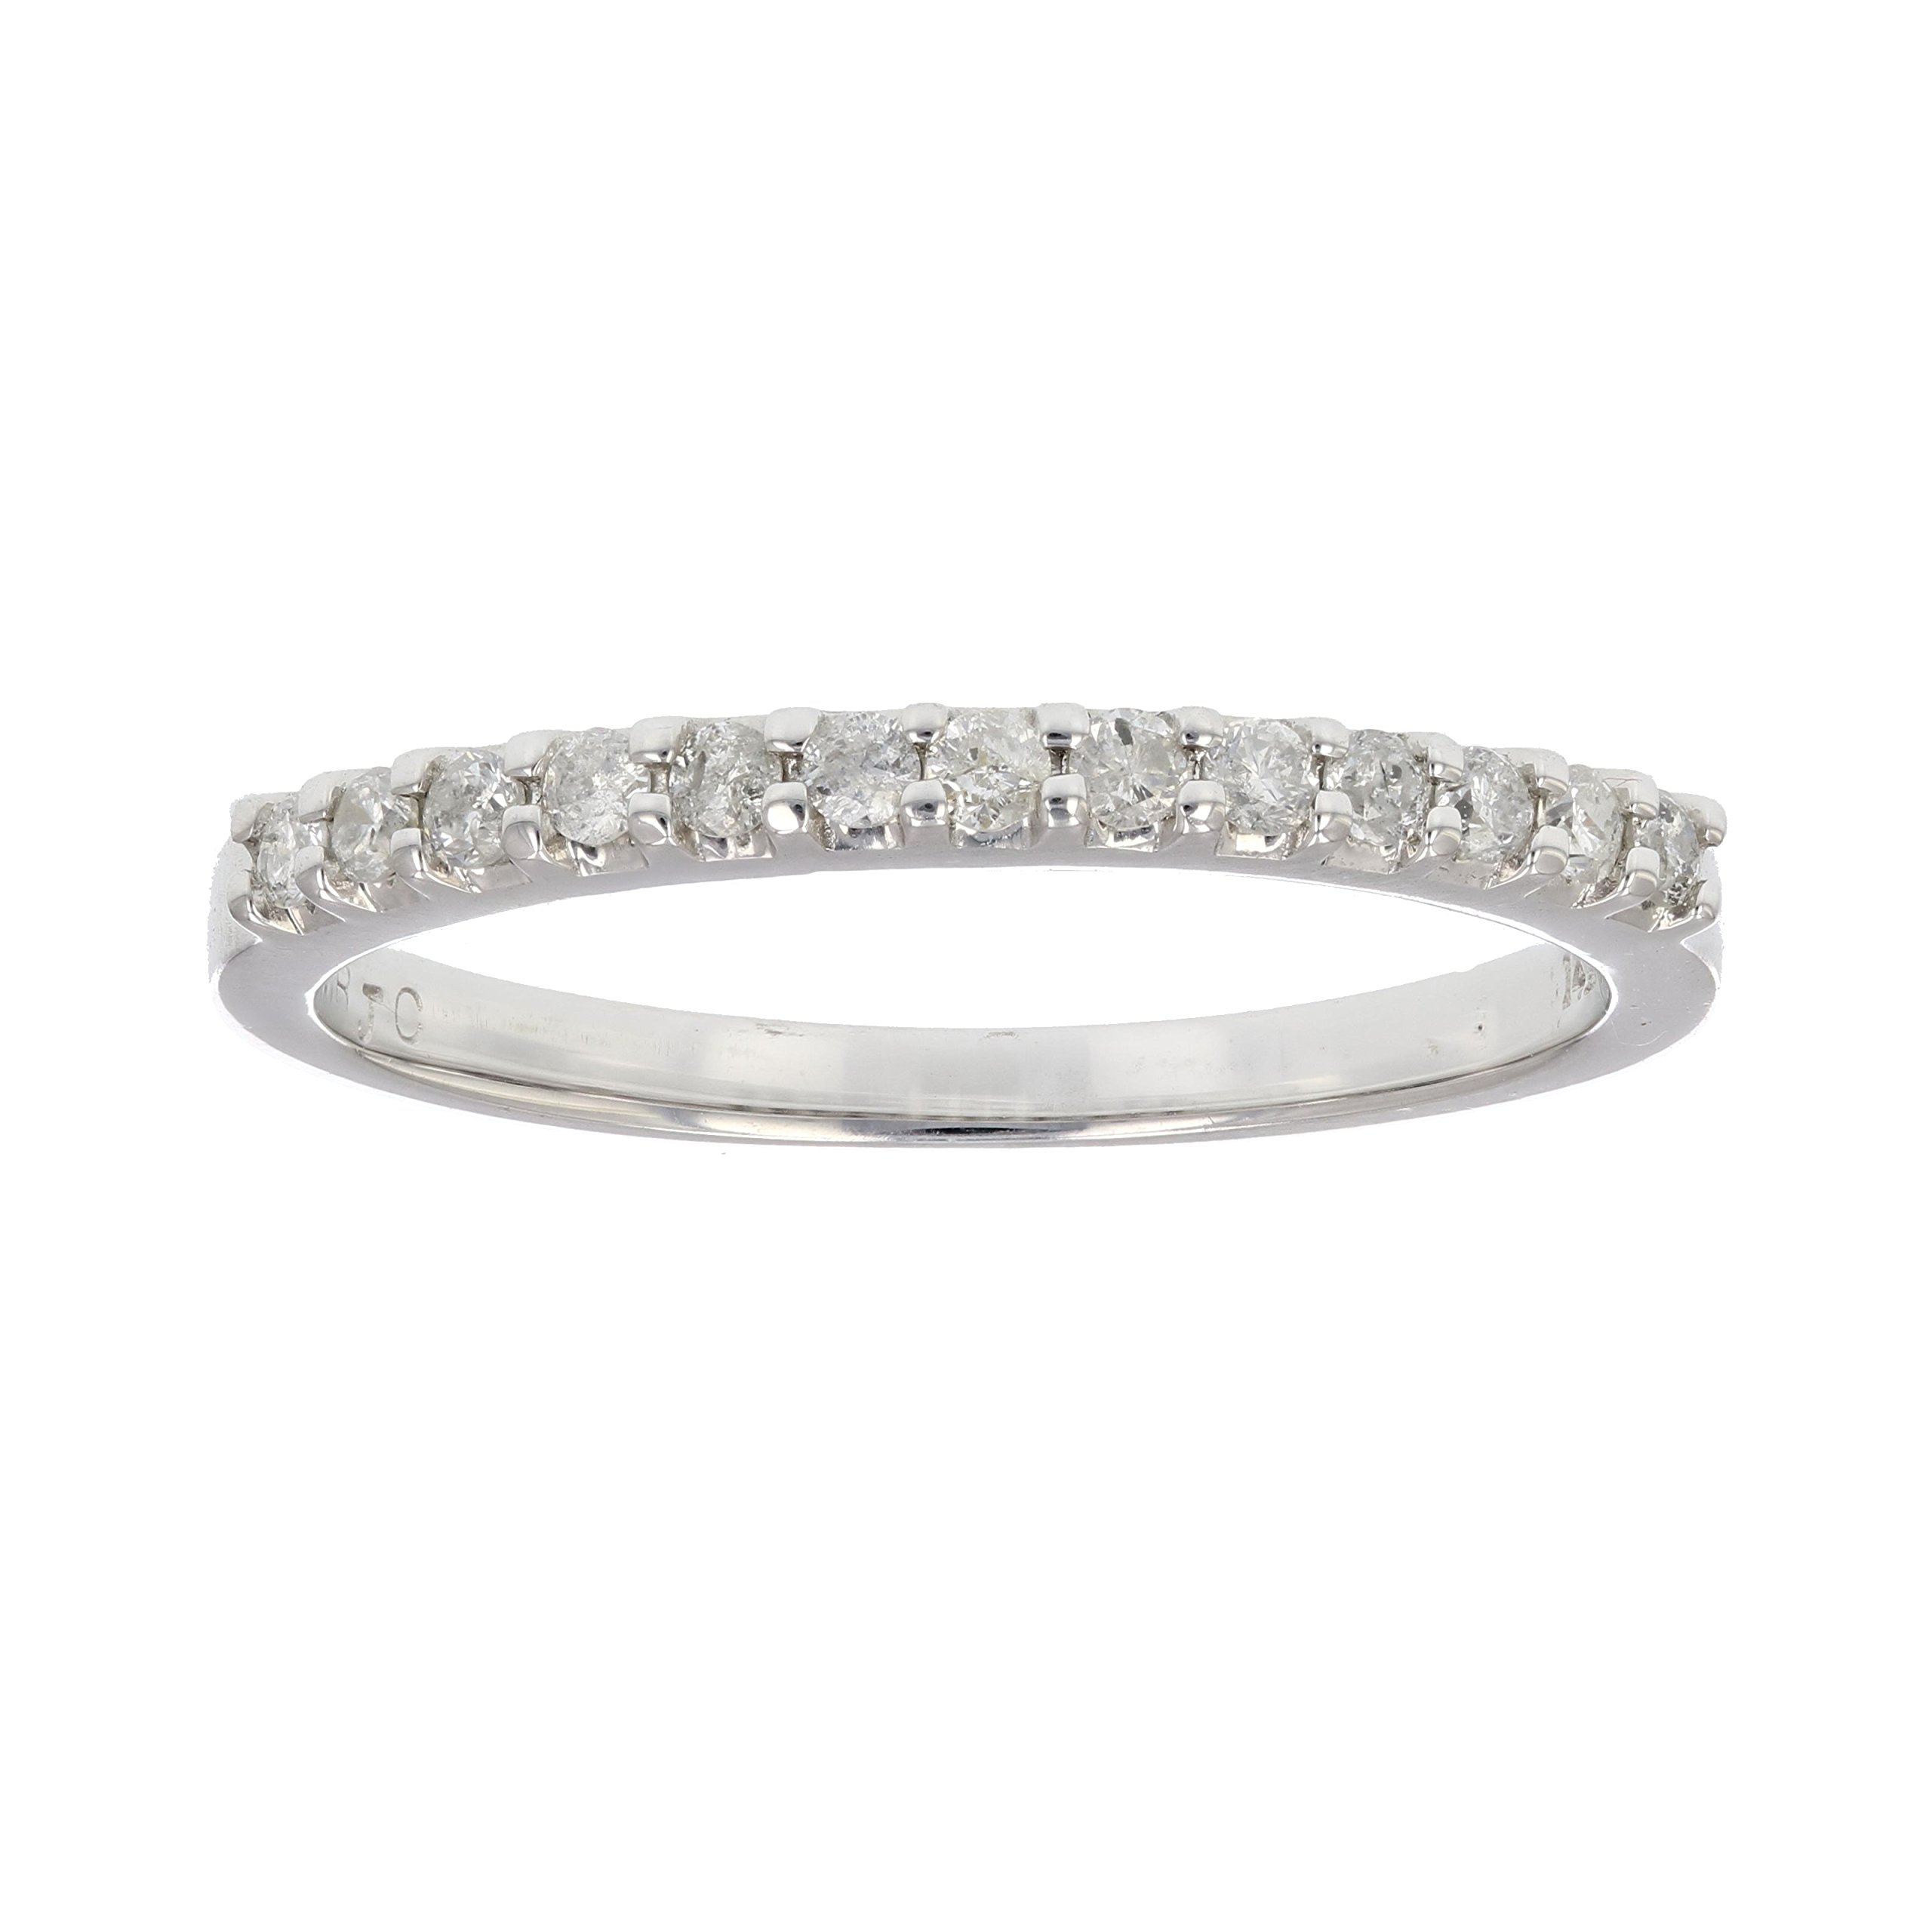 Vir Jewels 1/5 cttw Pave Diamond Wedding Band in 14k White Gold in Size 8